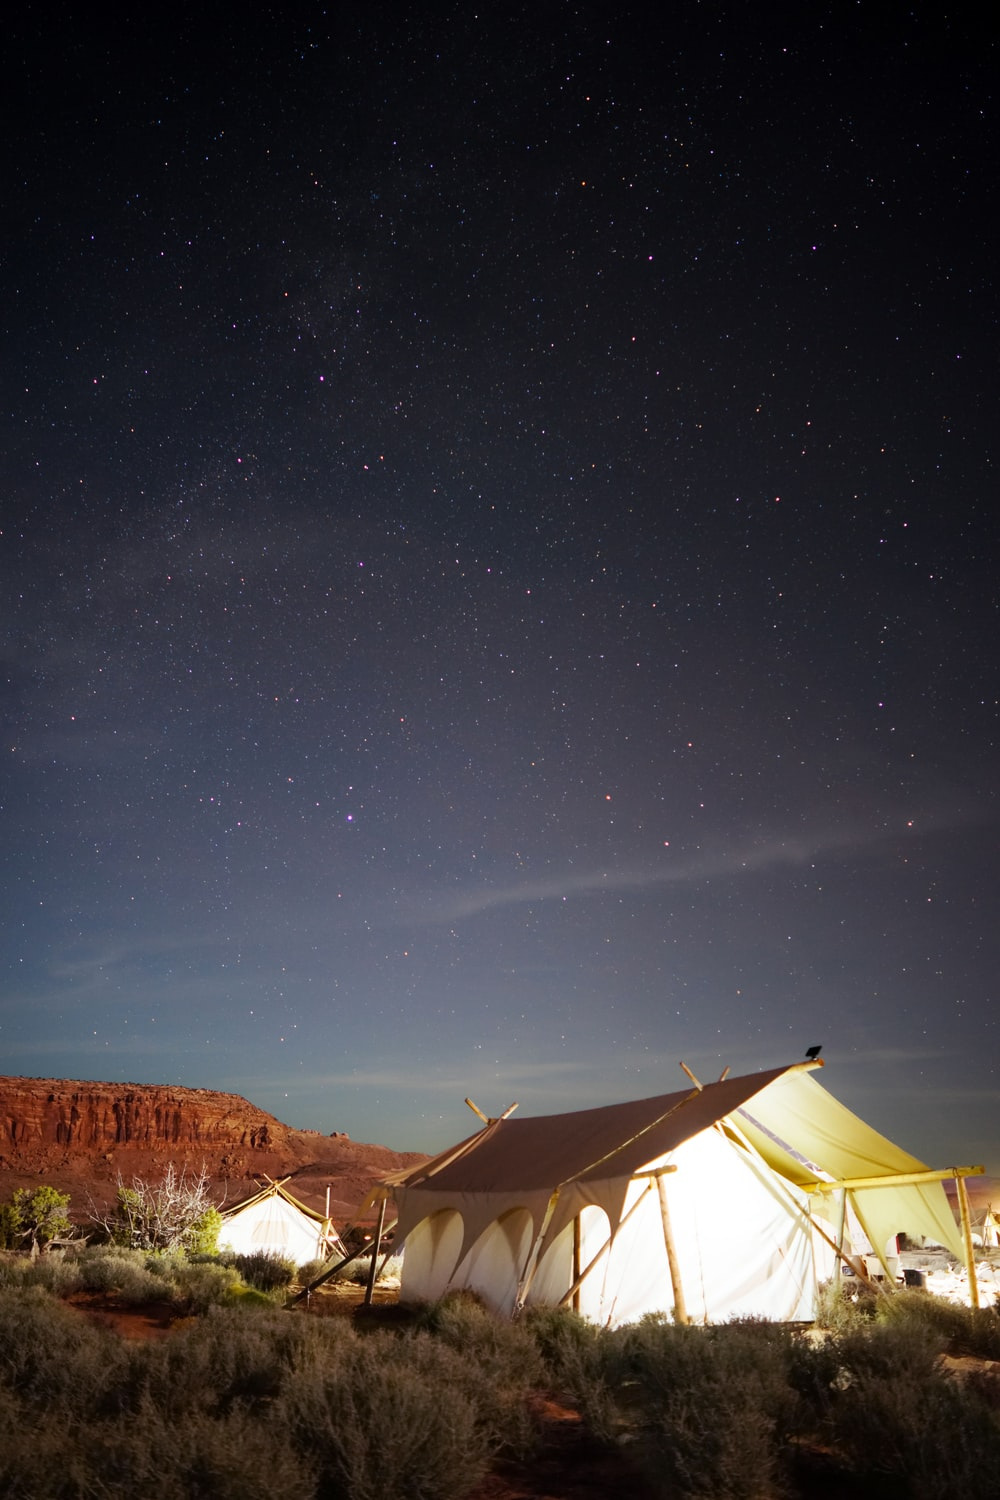 white cabin tent on open field during nighttime